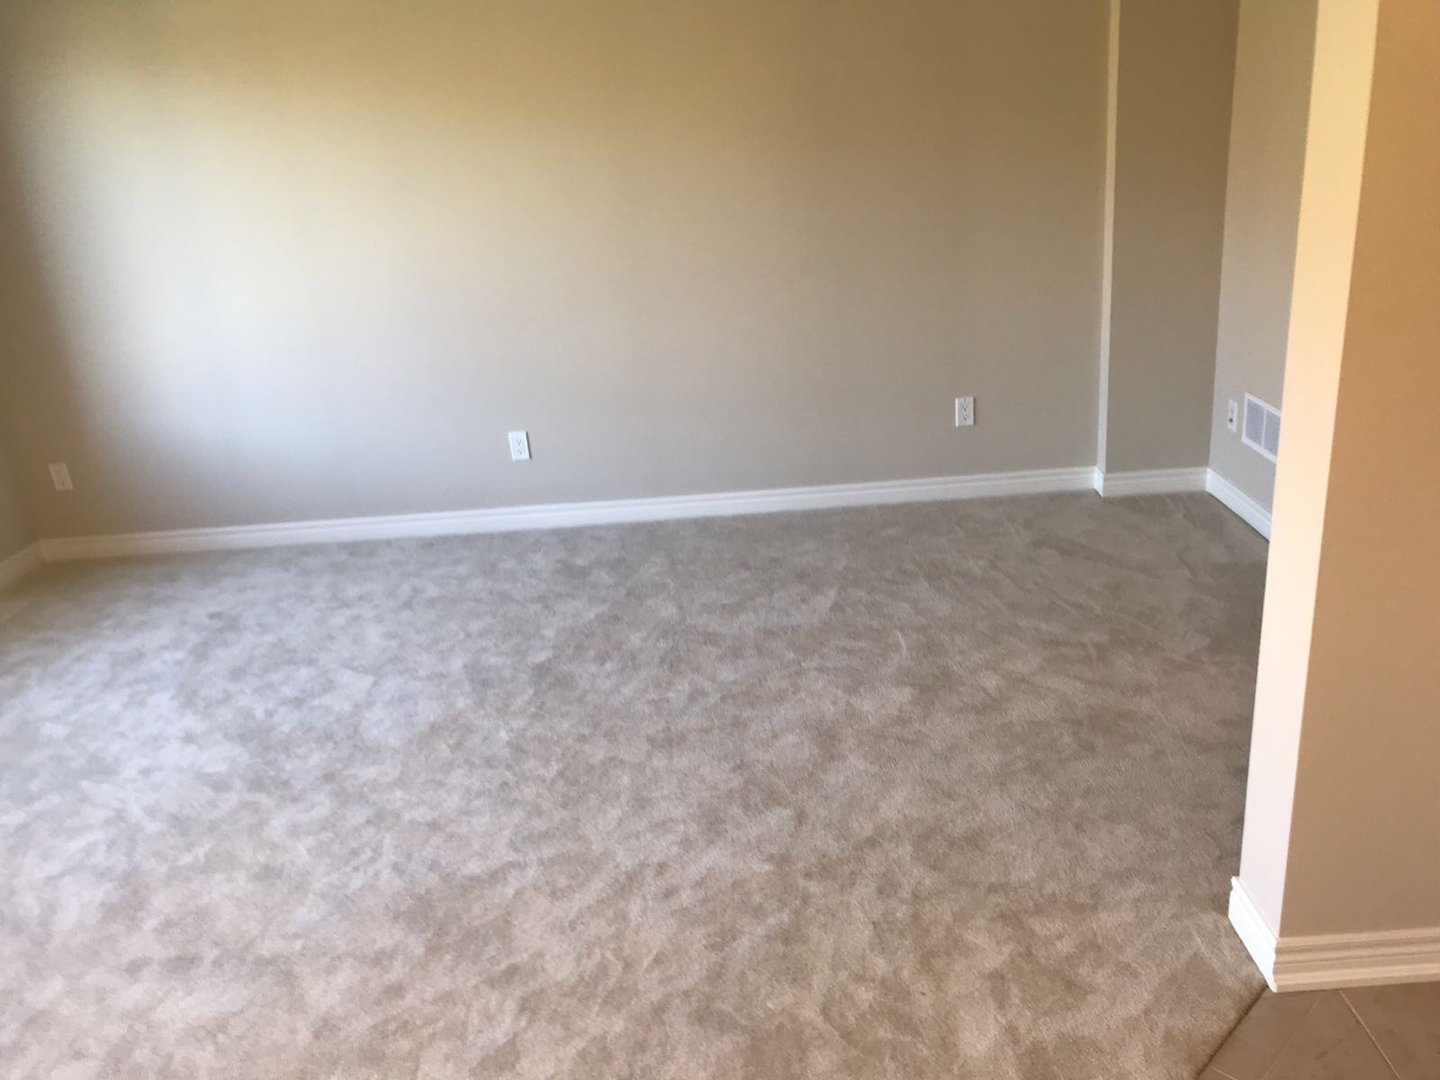 Apartment for rent at 285 Silverwood Ave, Welland, ON. This is the empty room with carpet.